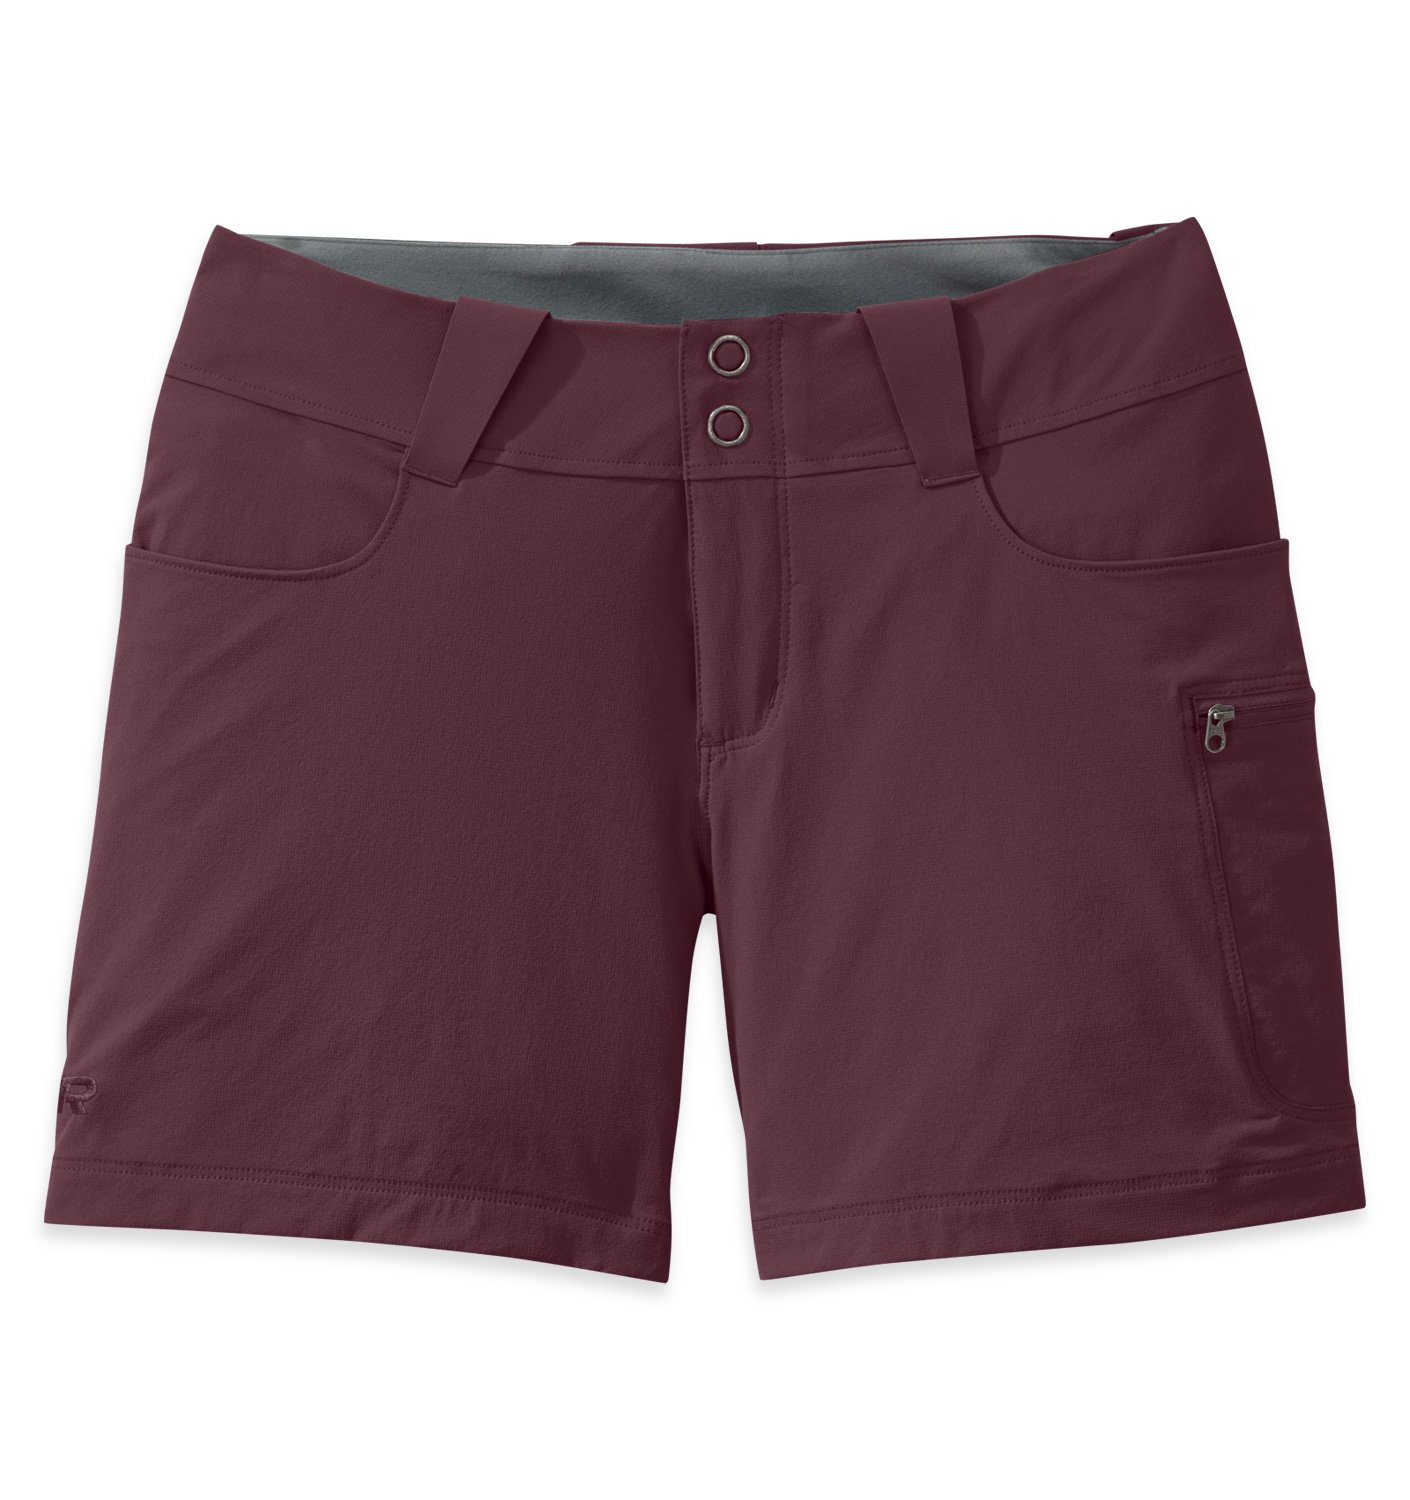 Outdoor Research Women's Ferrosi Summit 5'' Shorts, Pinot, 6 by Outdoor Research